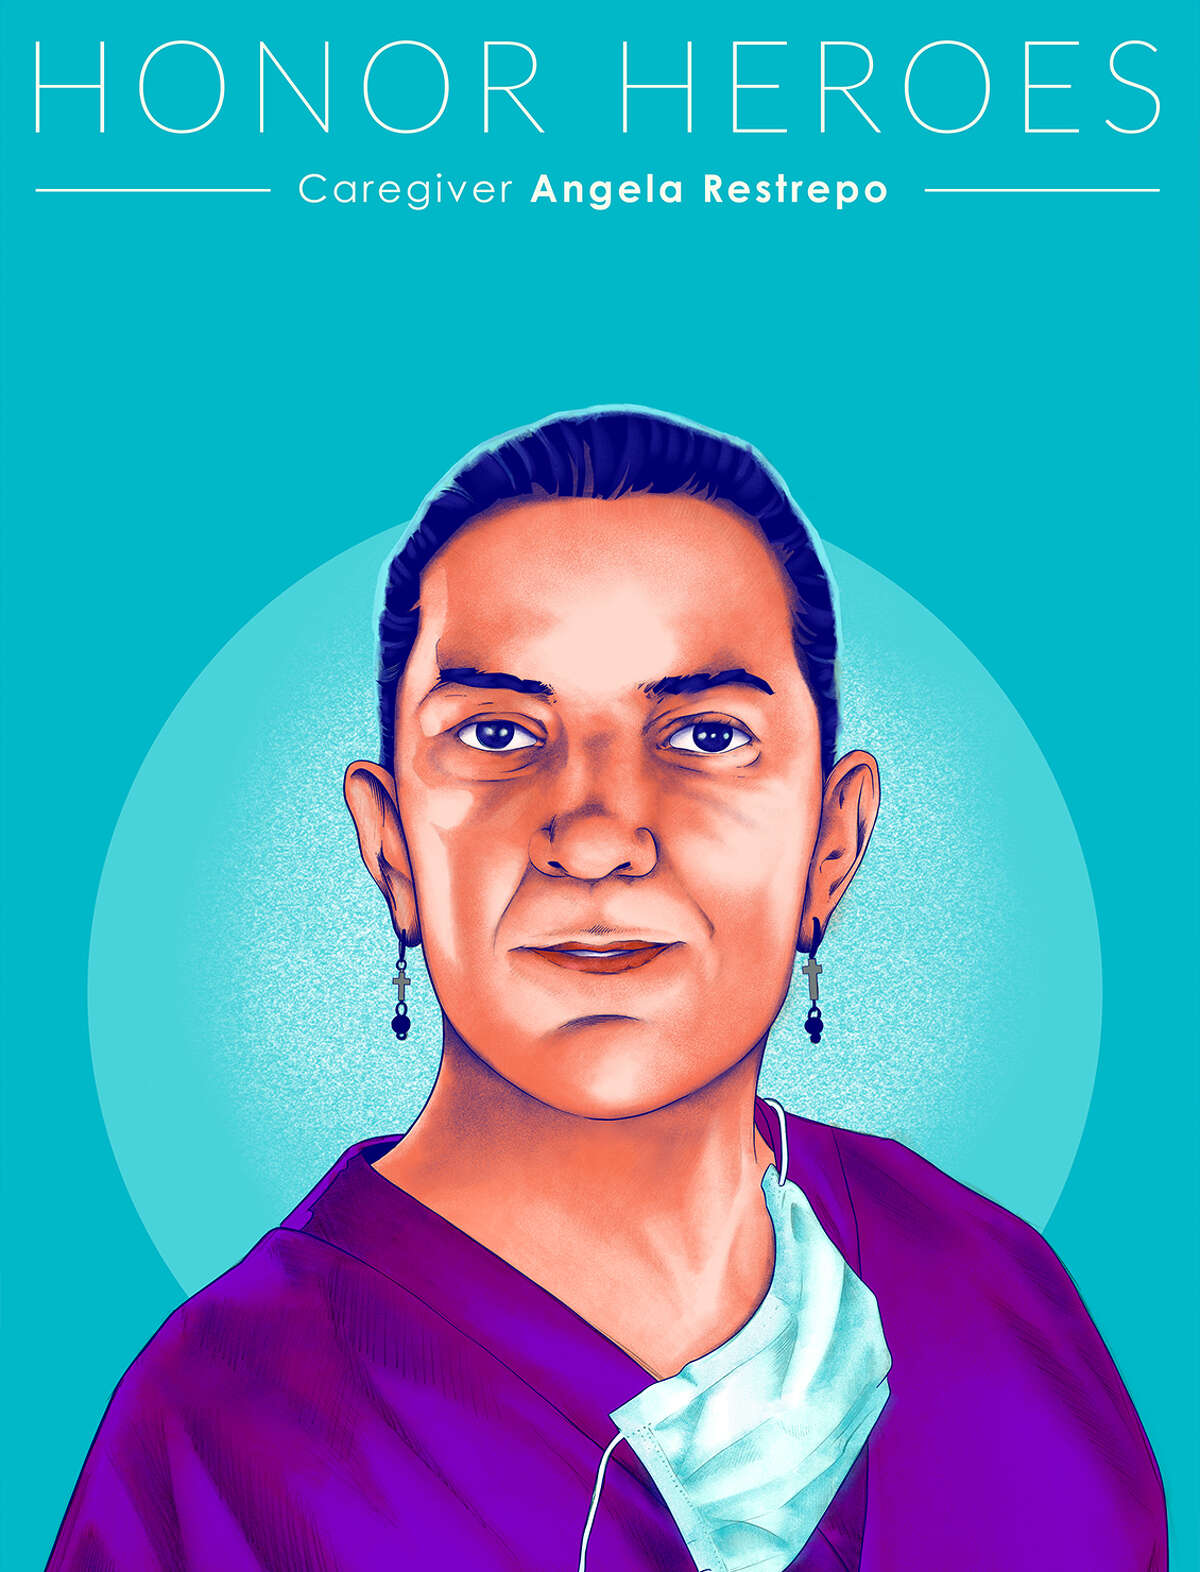 Heroes ArtistBrian YapHonoring: Caregiver Angela Restrepo From healthcare providers, first responders, delivery drivers, sanitation workers, mail carriers, supermarket staff, schoolteachers, and many others, Adobe and these creative luminaries are shining a light on their tireless efforts.